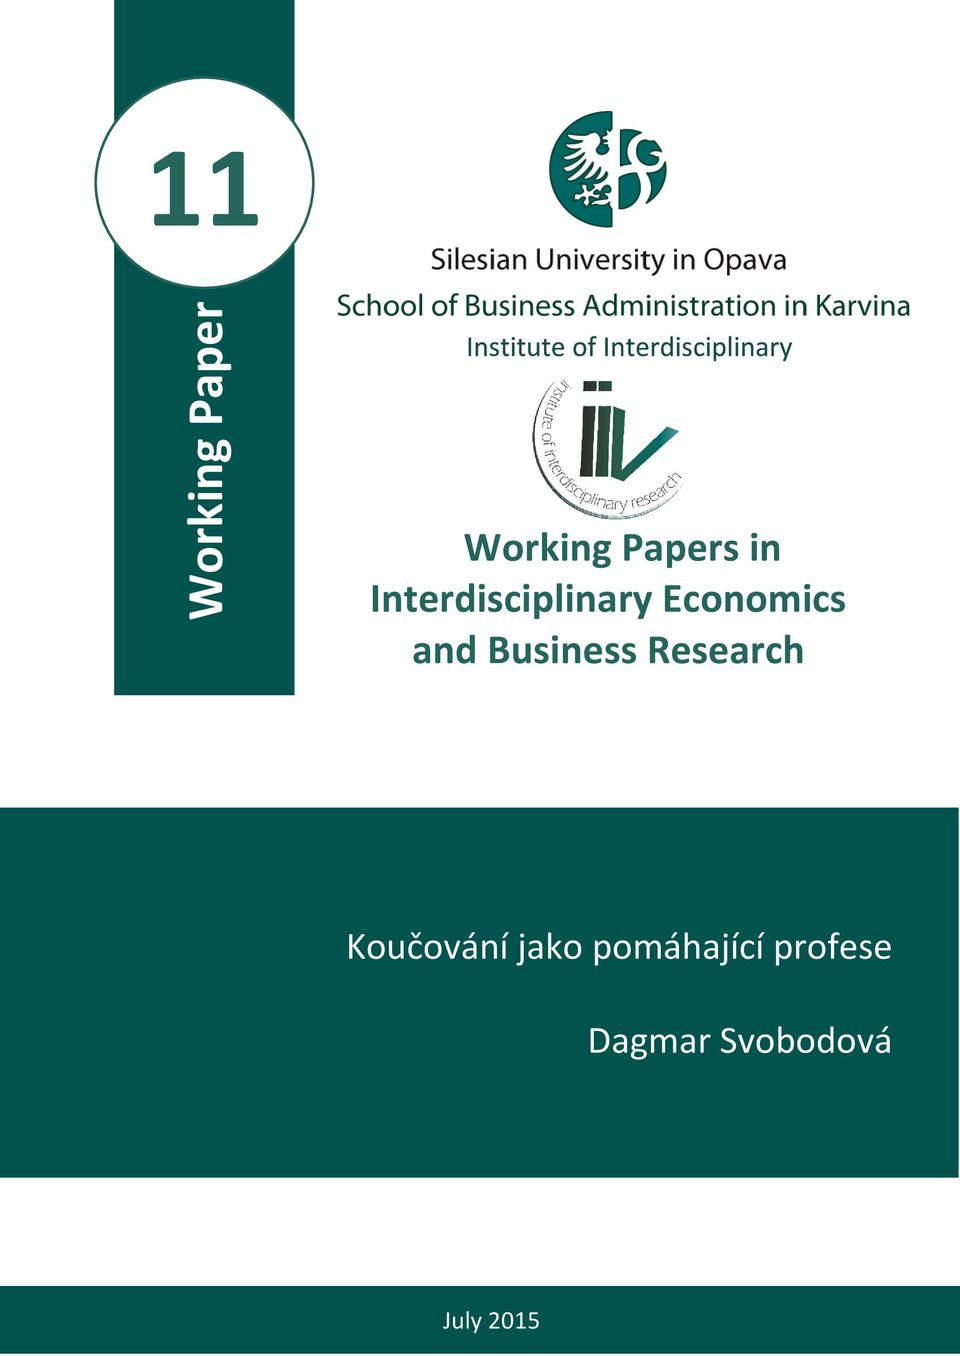 Interdisciplinary Economics and Business